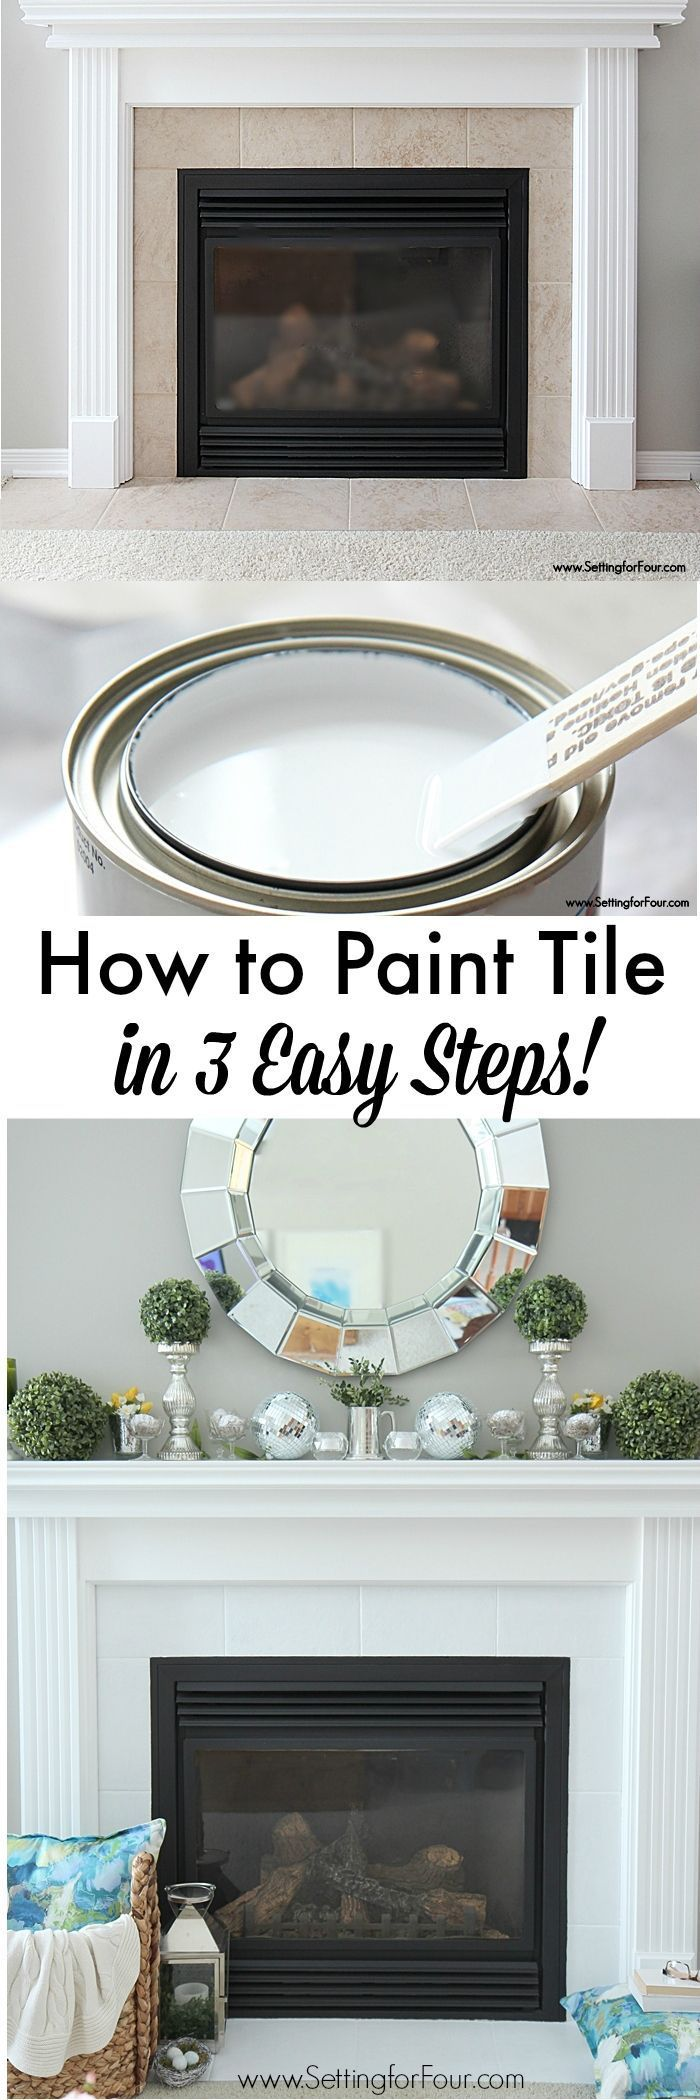 25 Best Ideas About Painted Tiles On Pinterest Painting Tiles Painting Ti